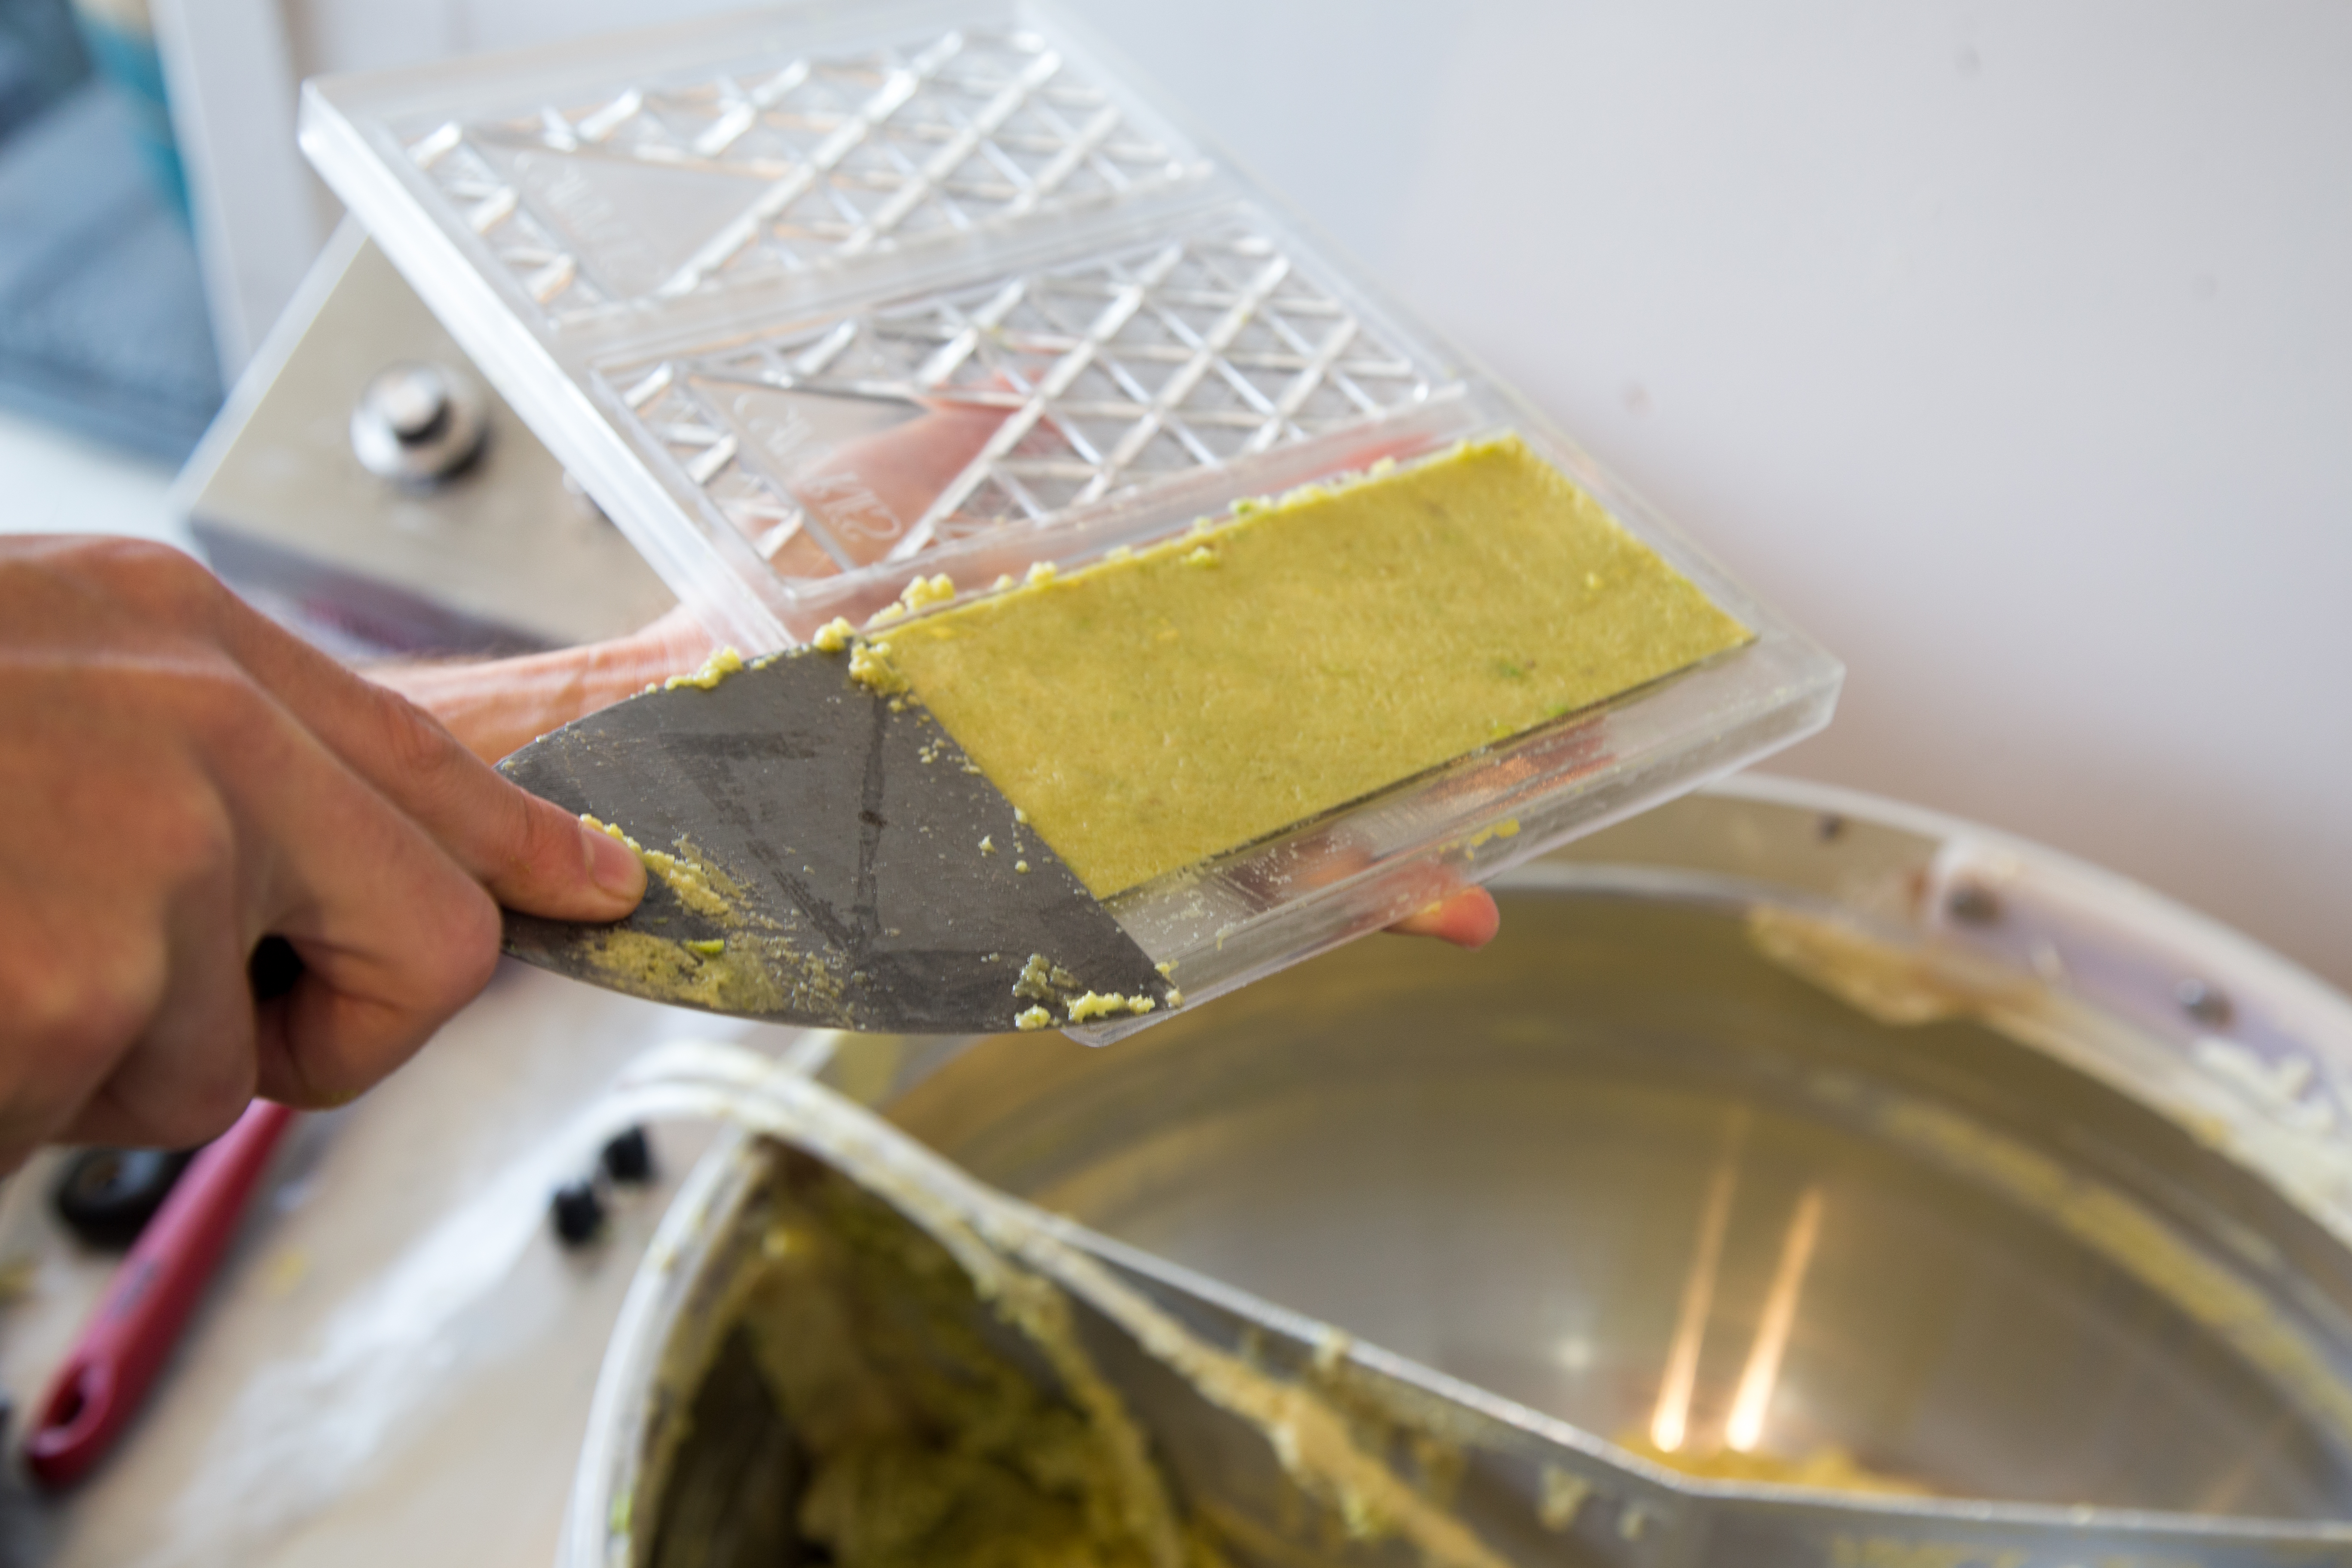 The mixture is ladled into custom molds